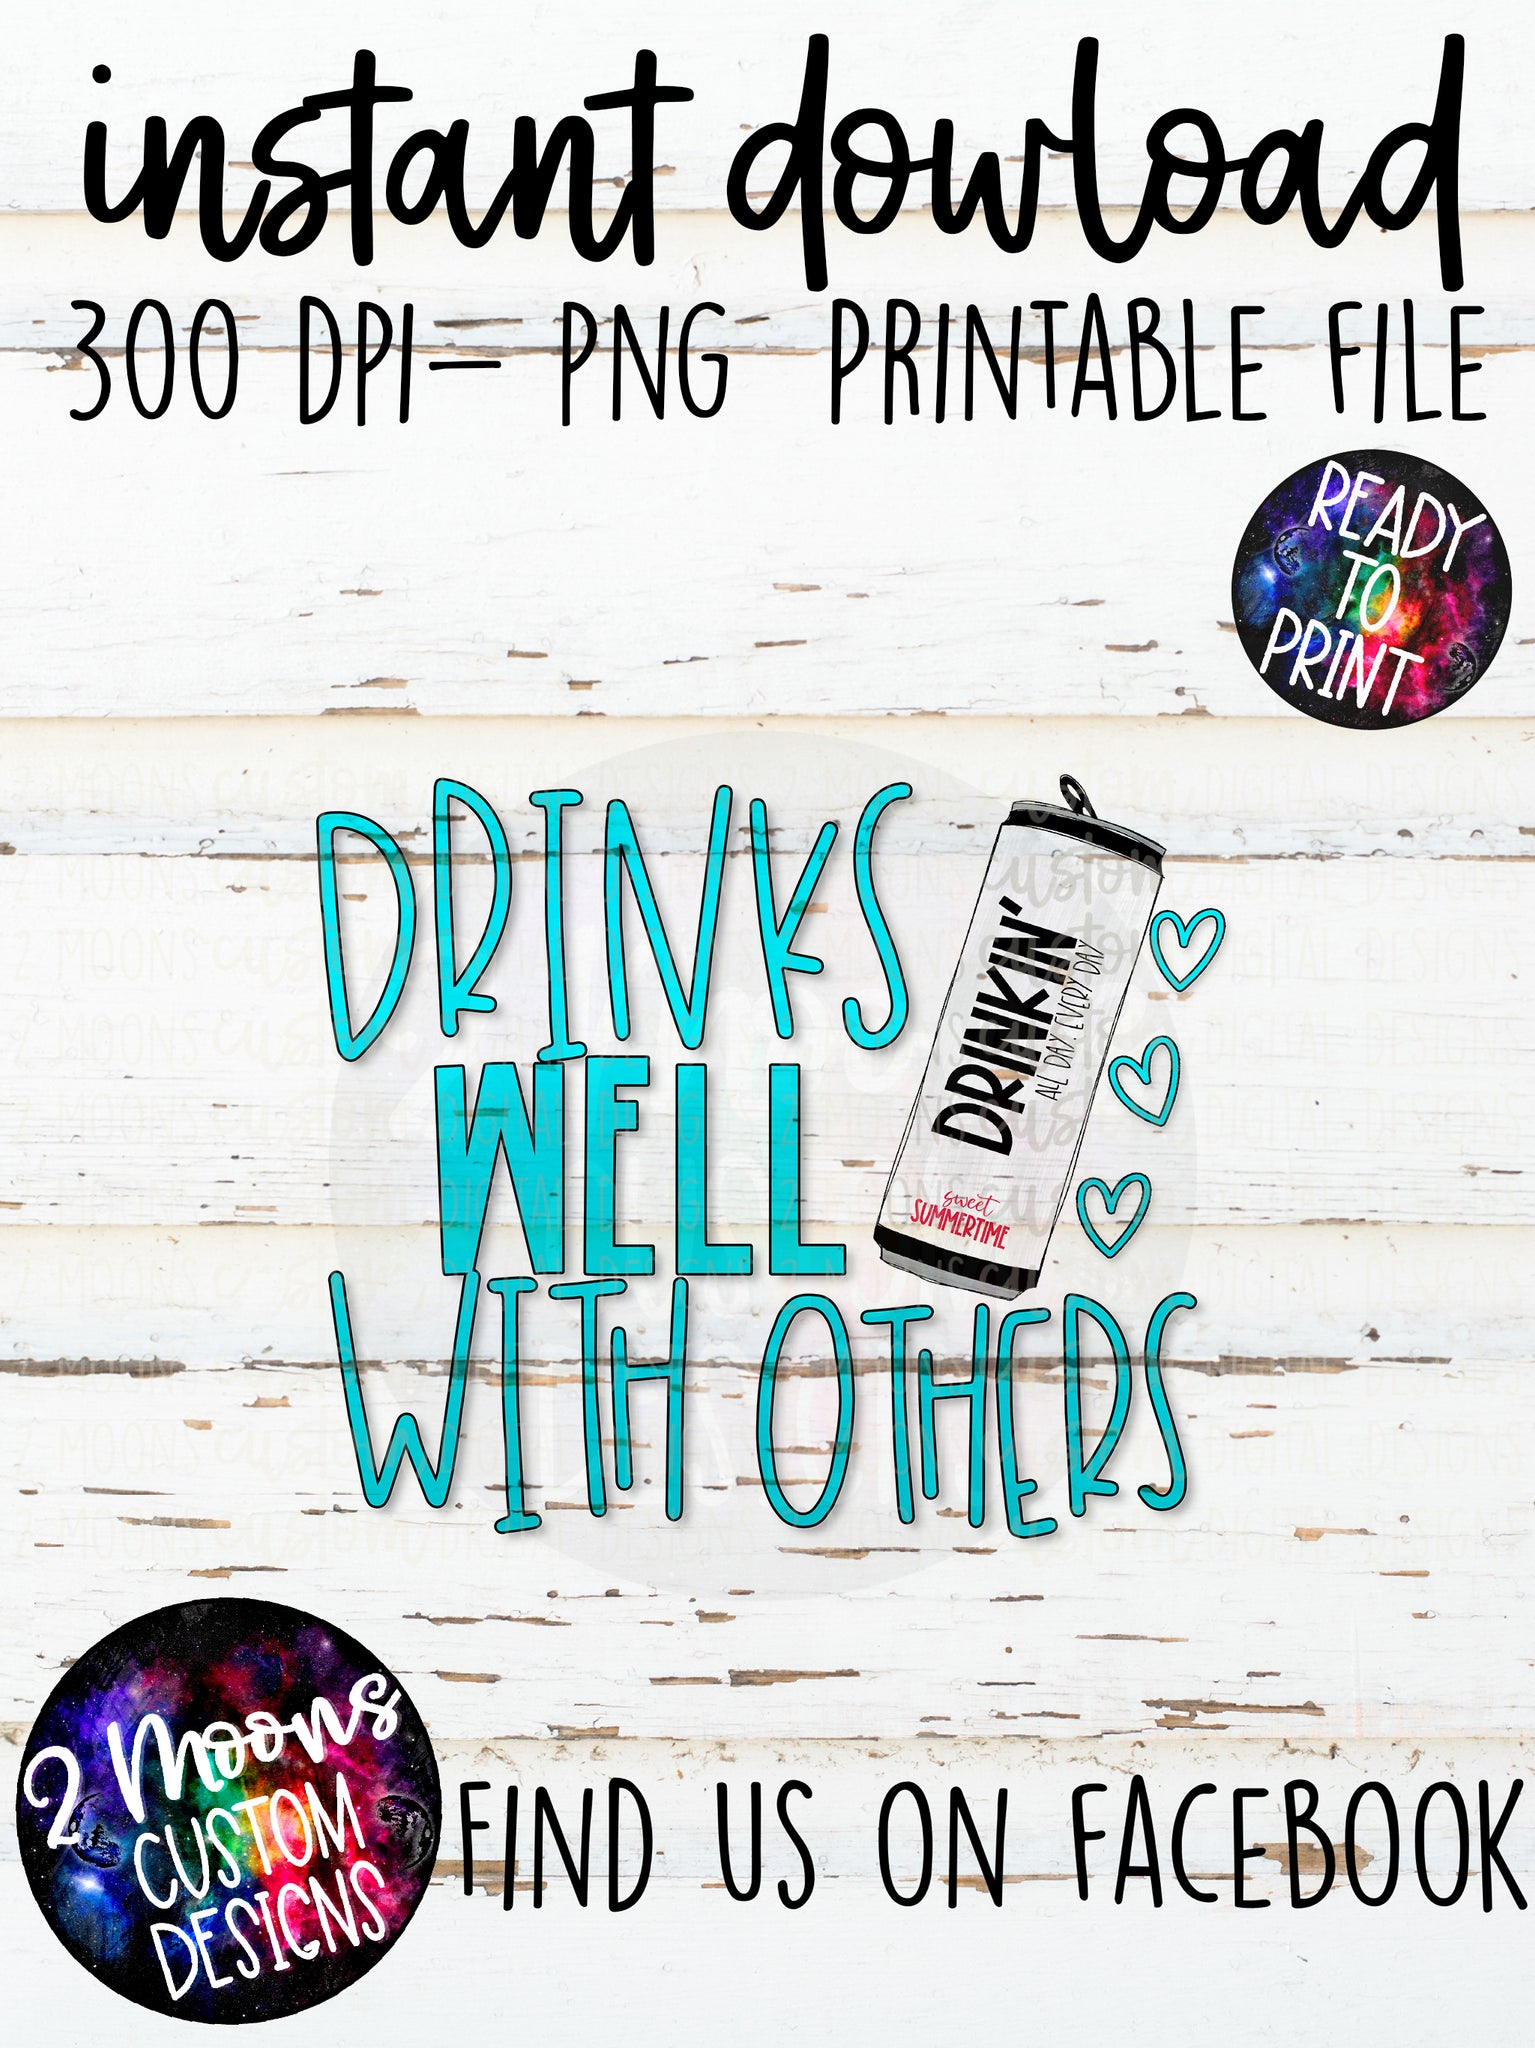 Drinks Well With Others - Summer Design